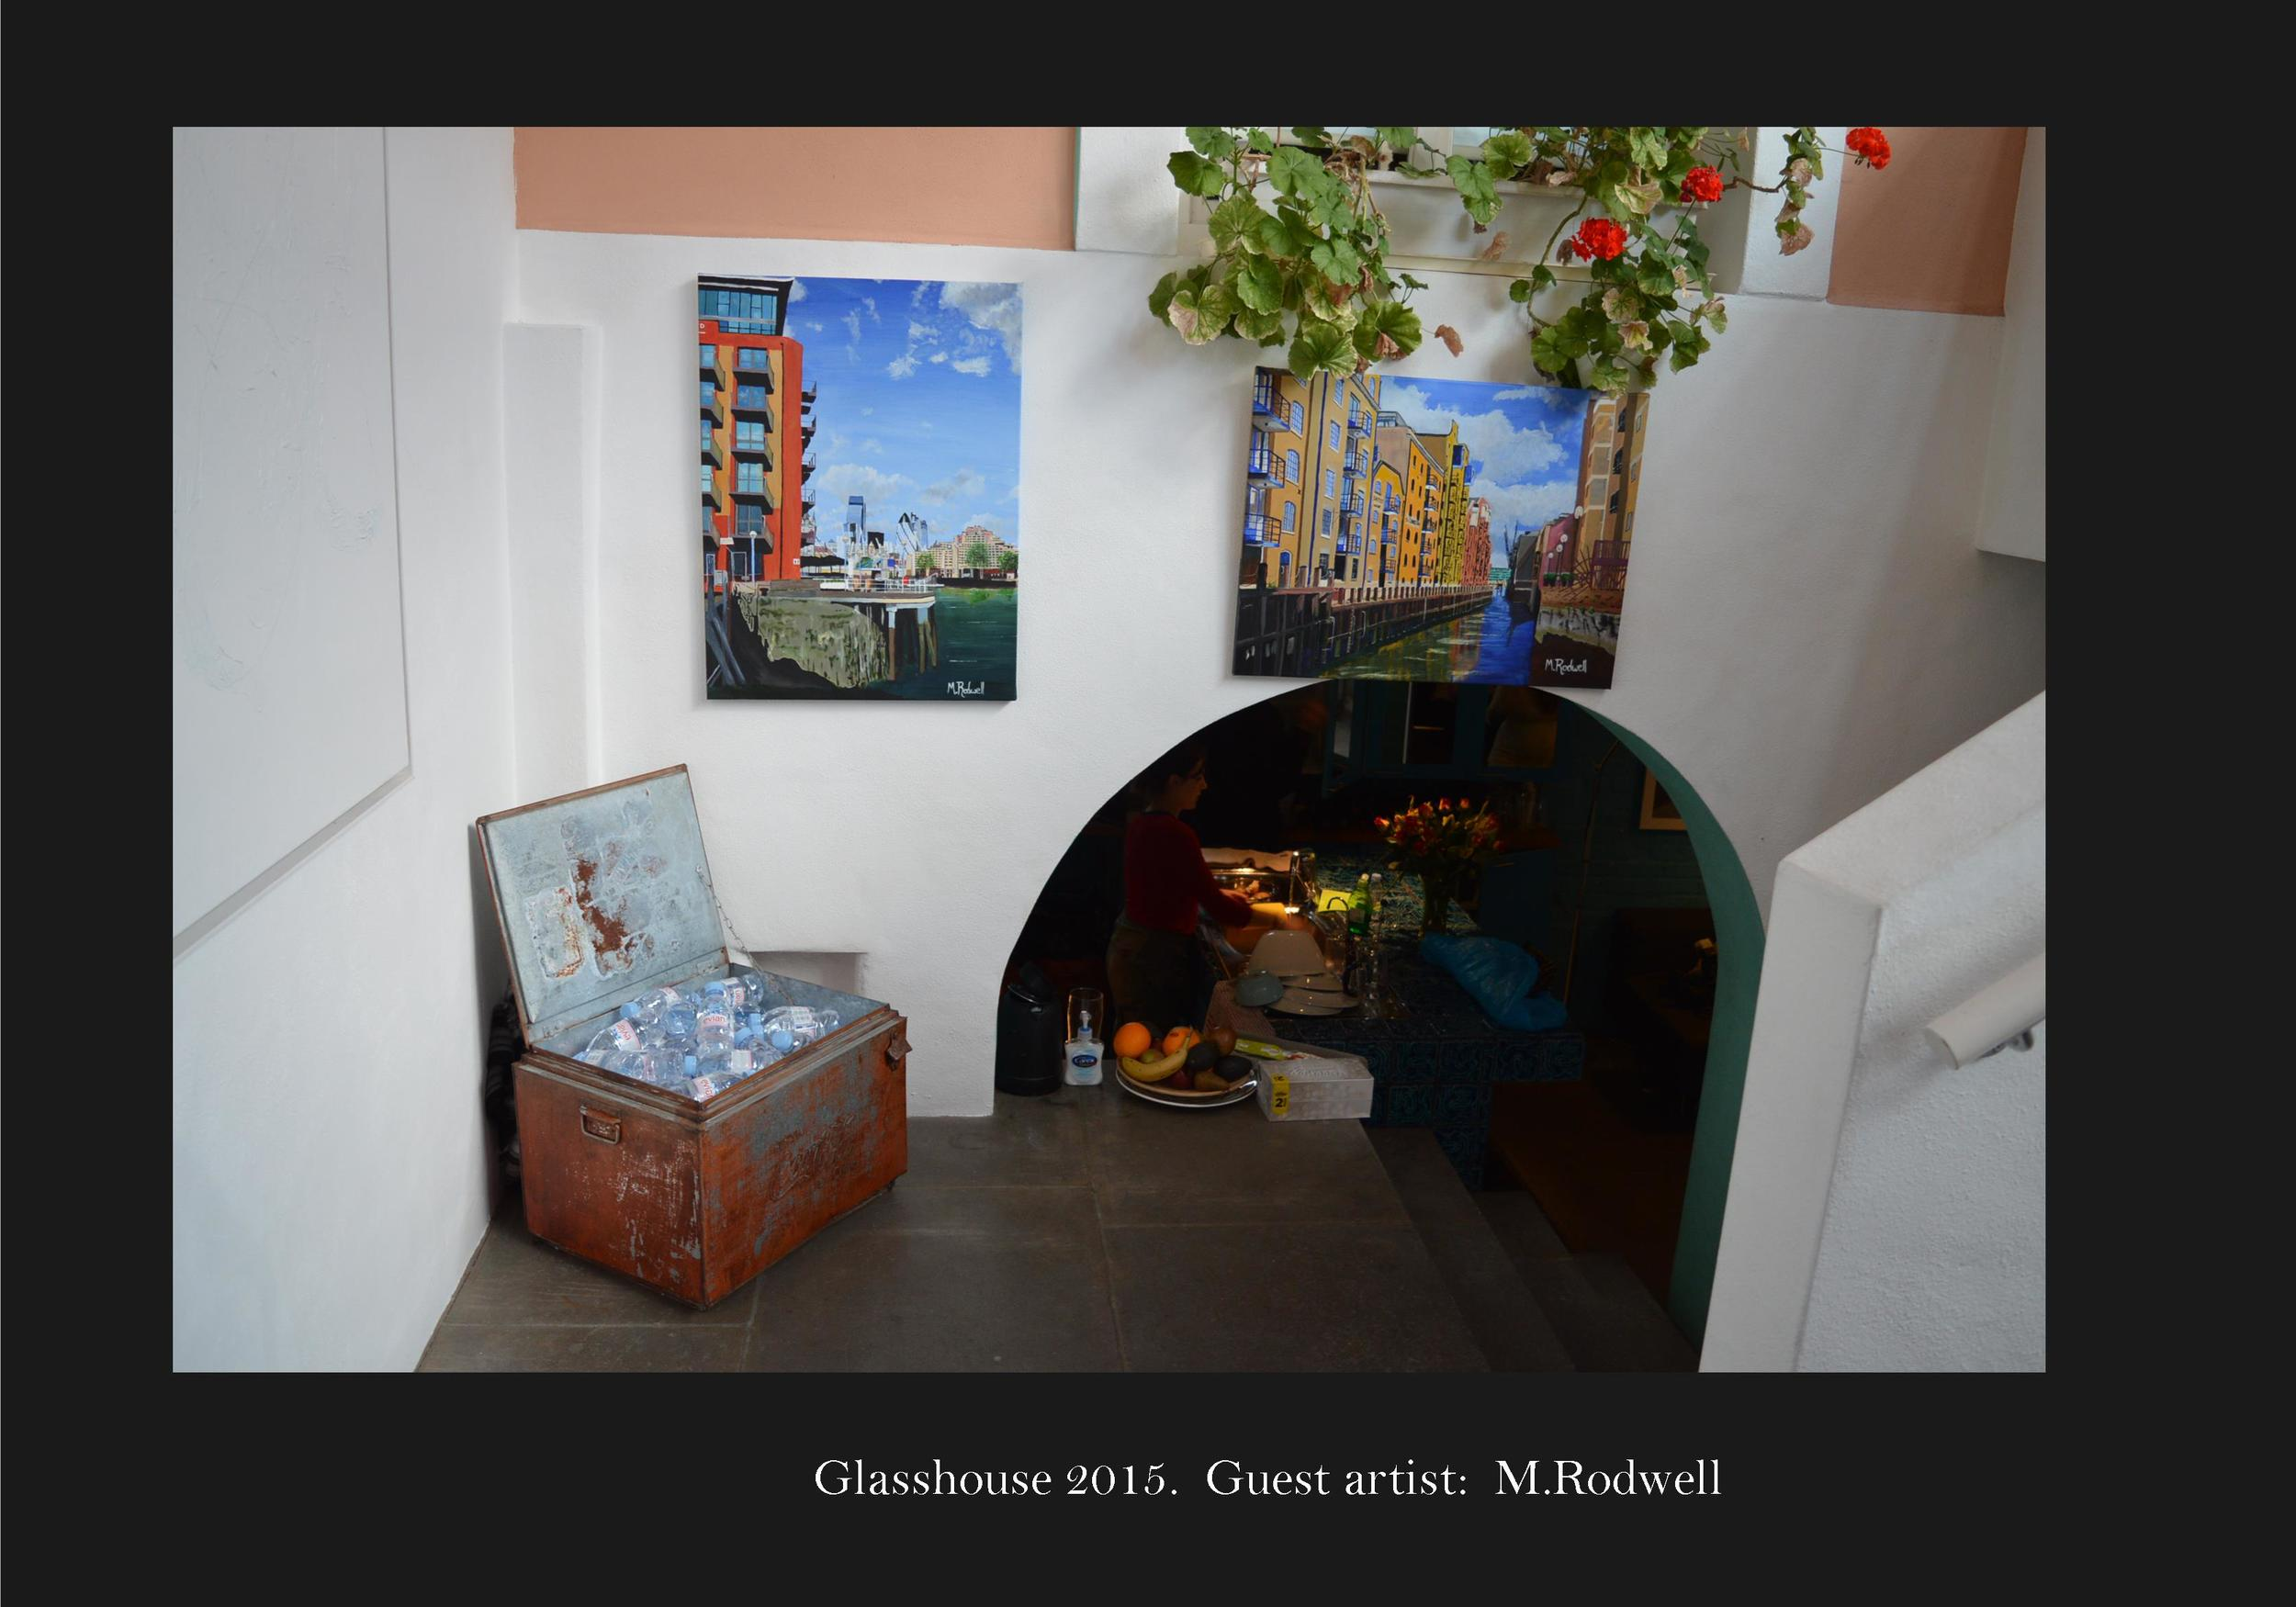 Glasshouse exhbition featuring M.Rodwell